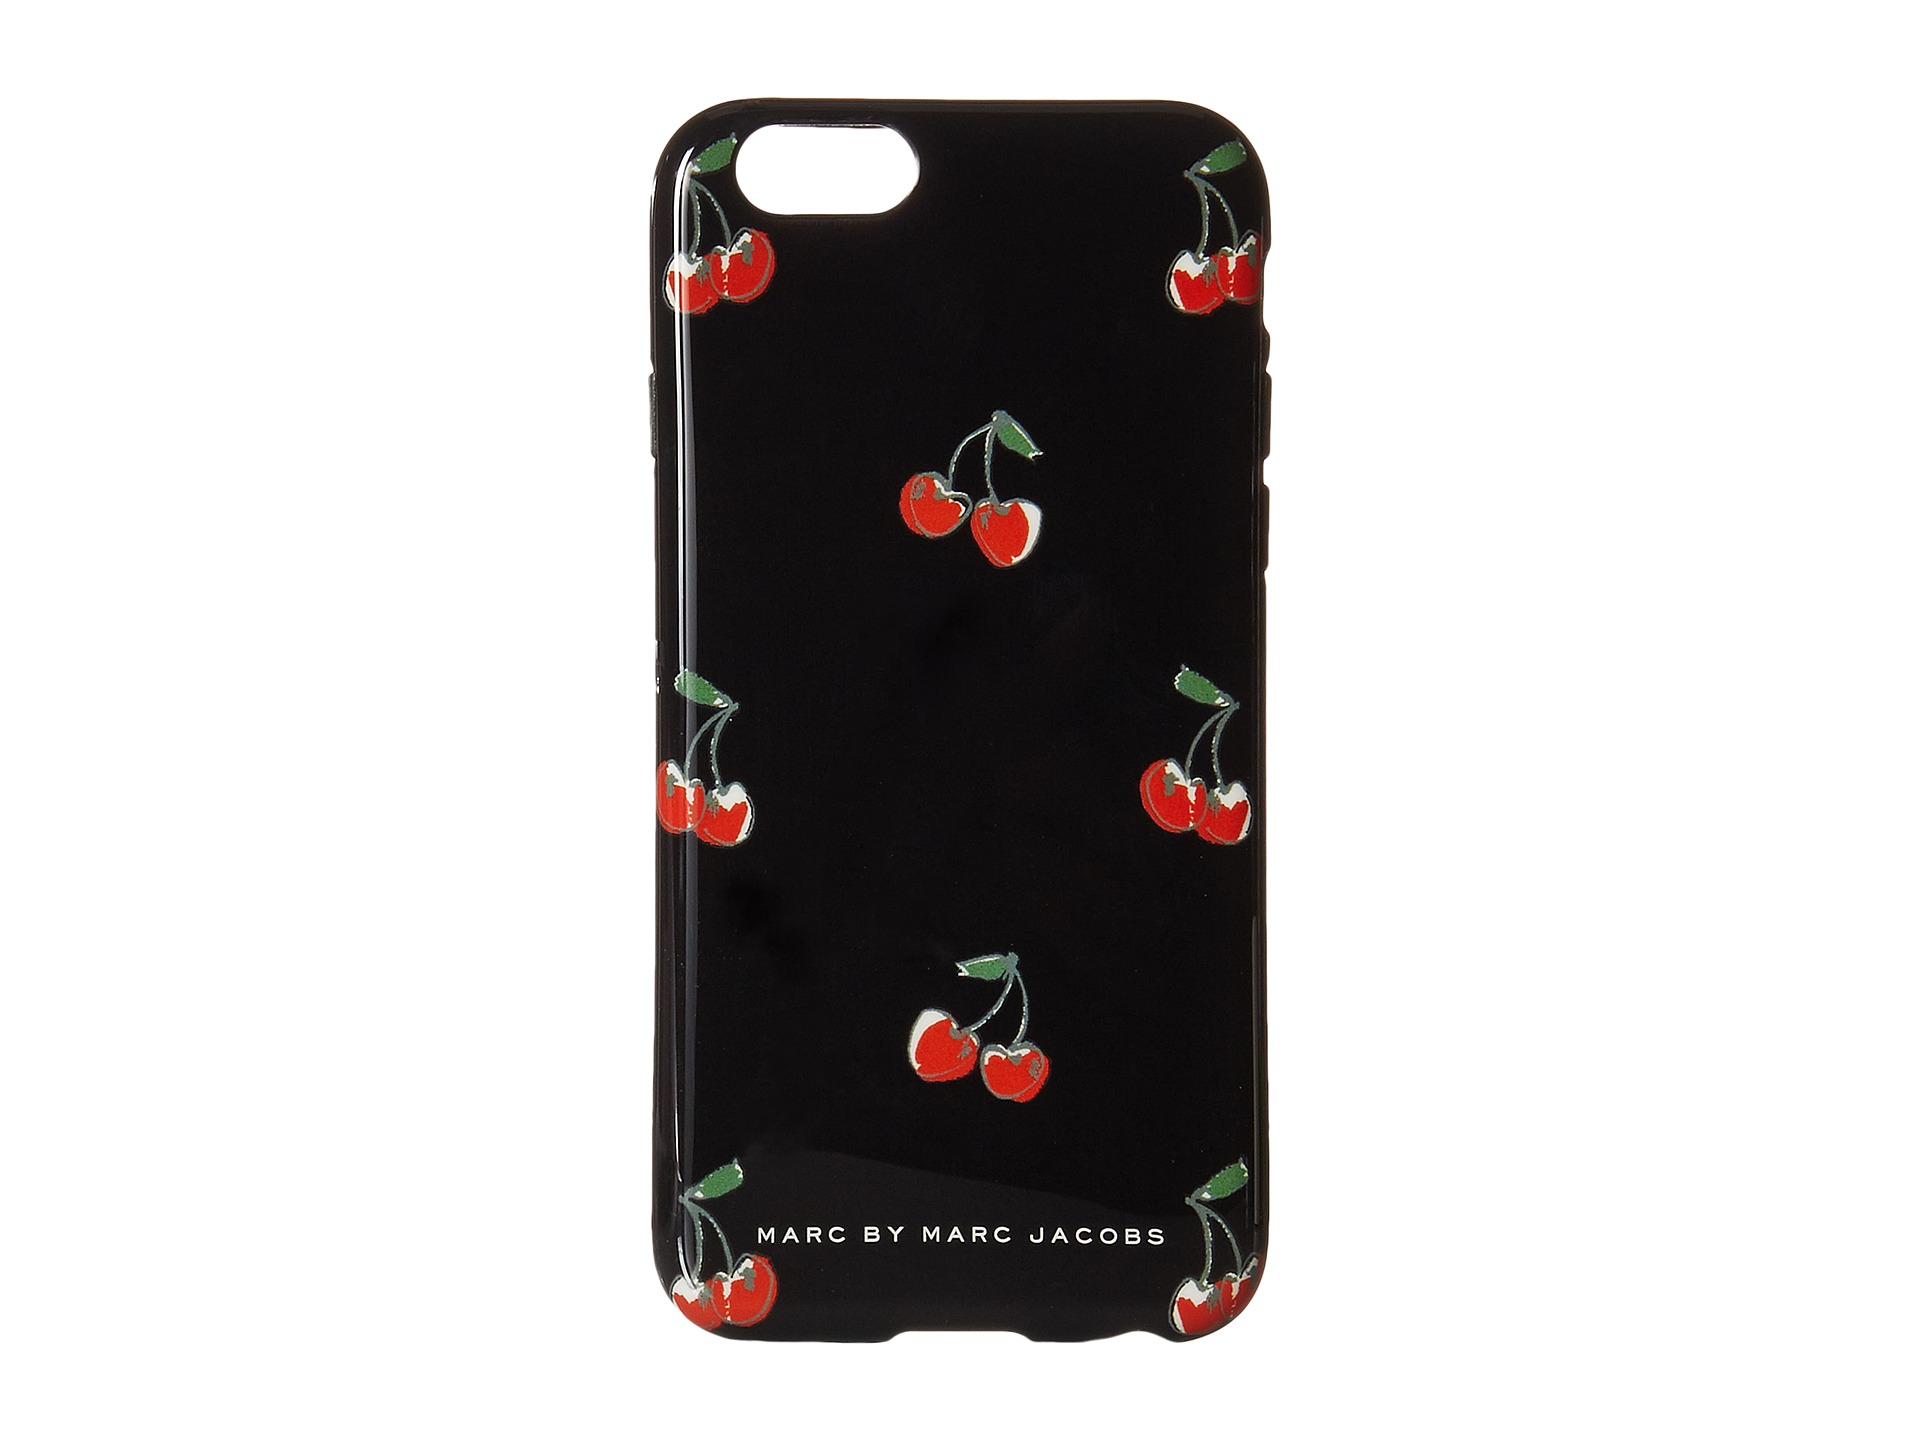 marc by marc jacobs phone cases cherry iphone 6s case. Black Bedroom Furniture Sets. Home Design Ideas